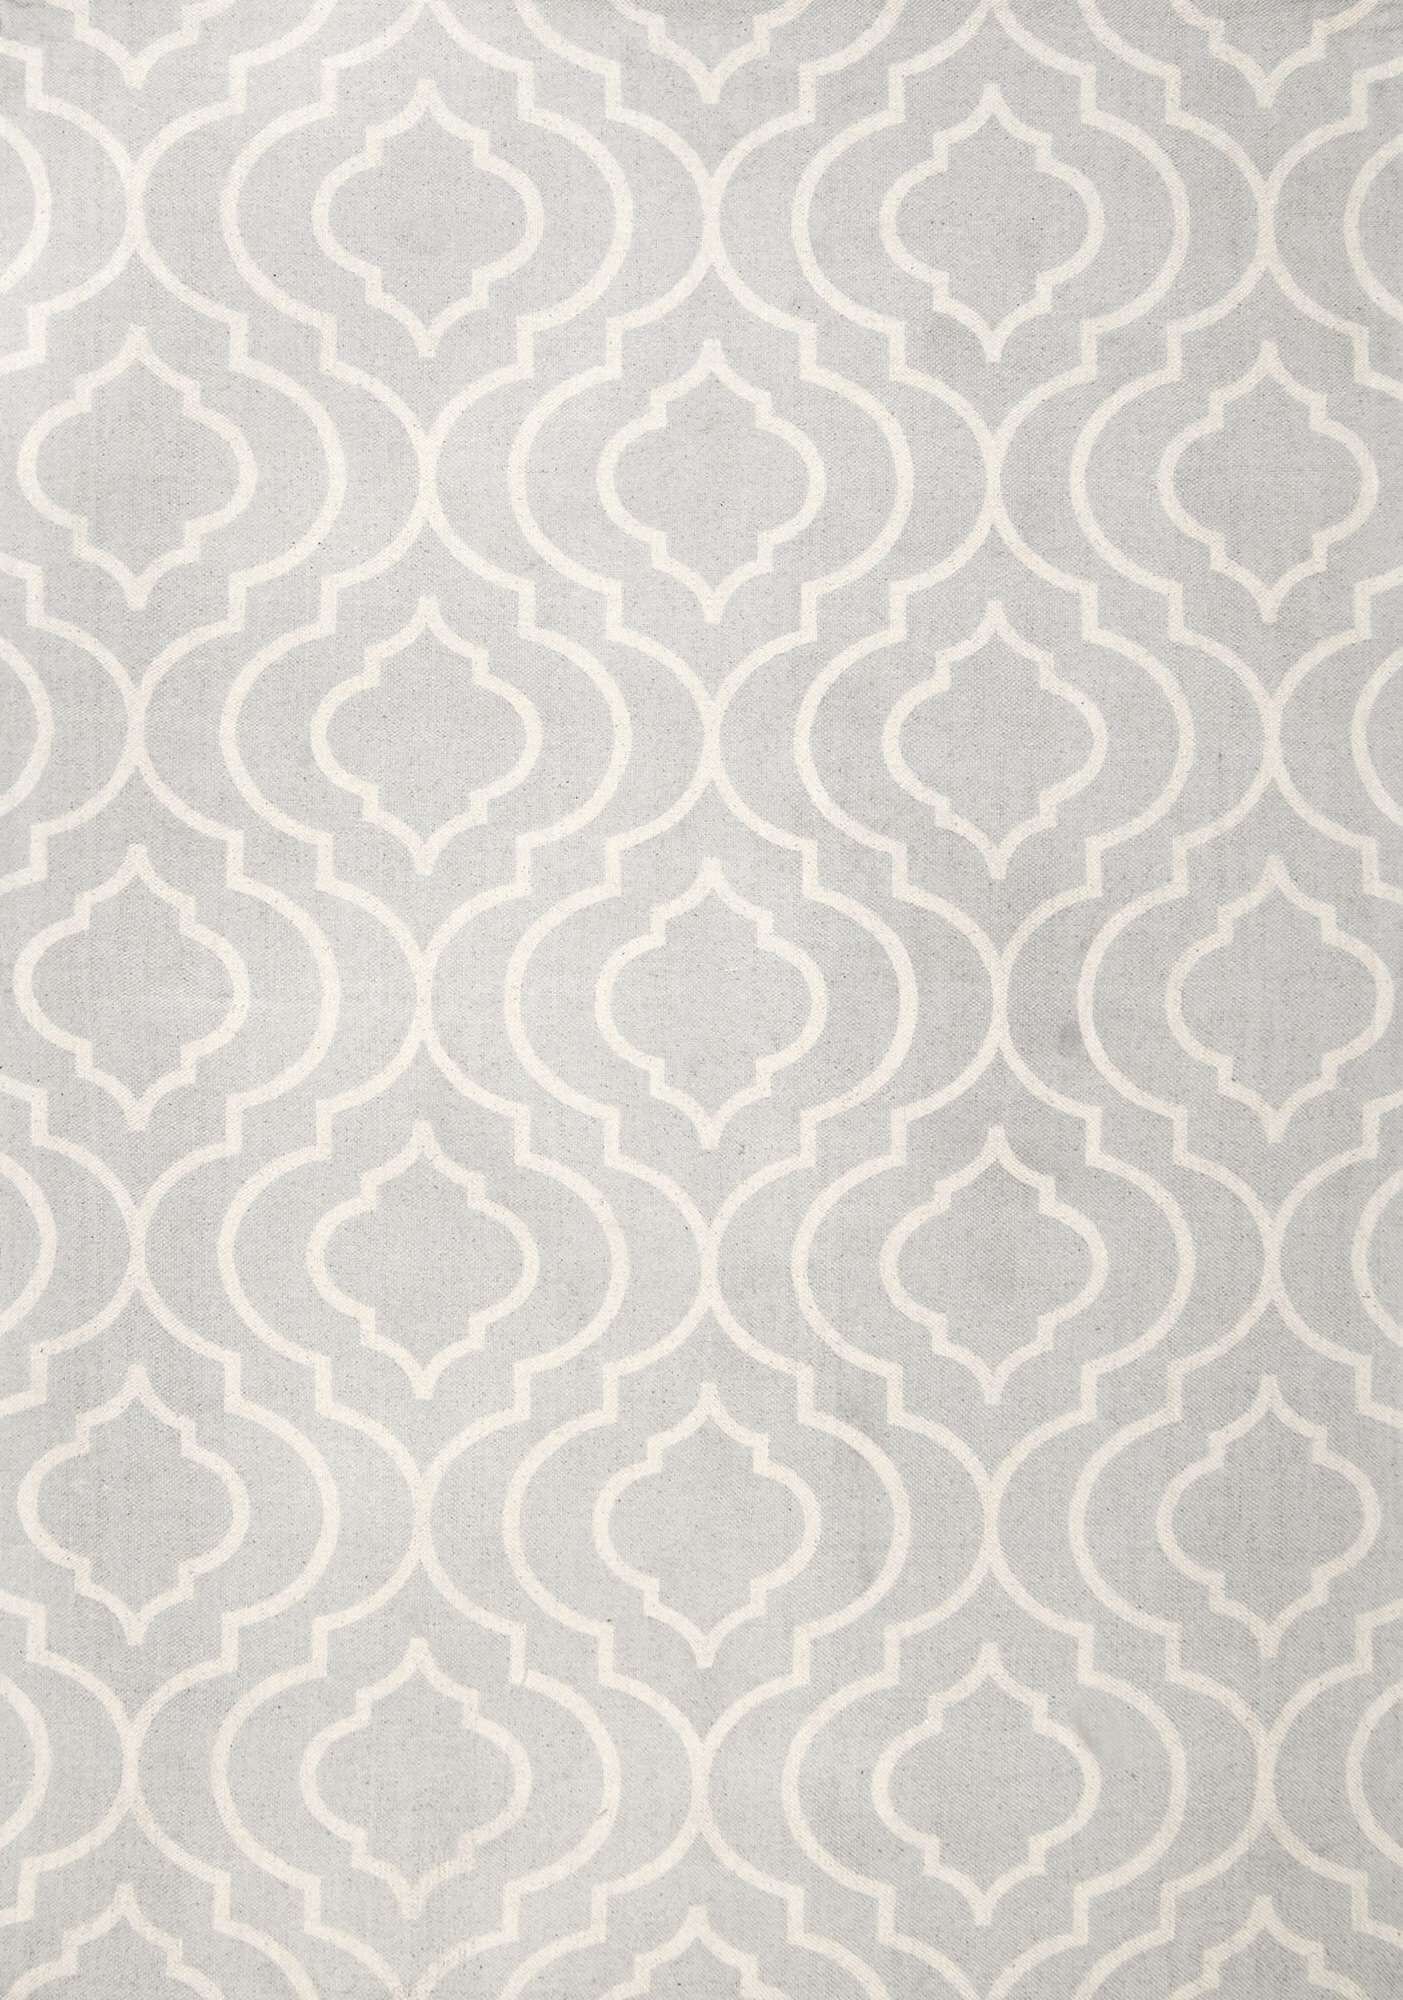 Justine Light Gray Area Rug Rug Size: Rectangle 4' x 6'